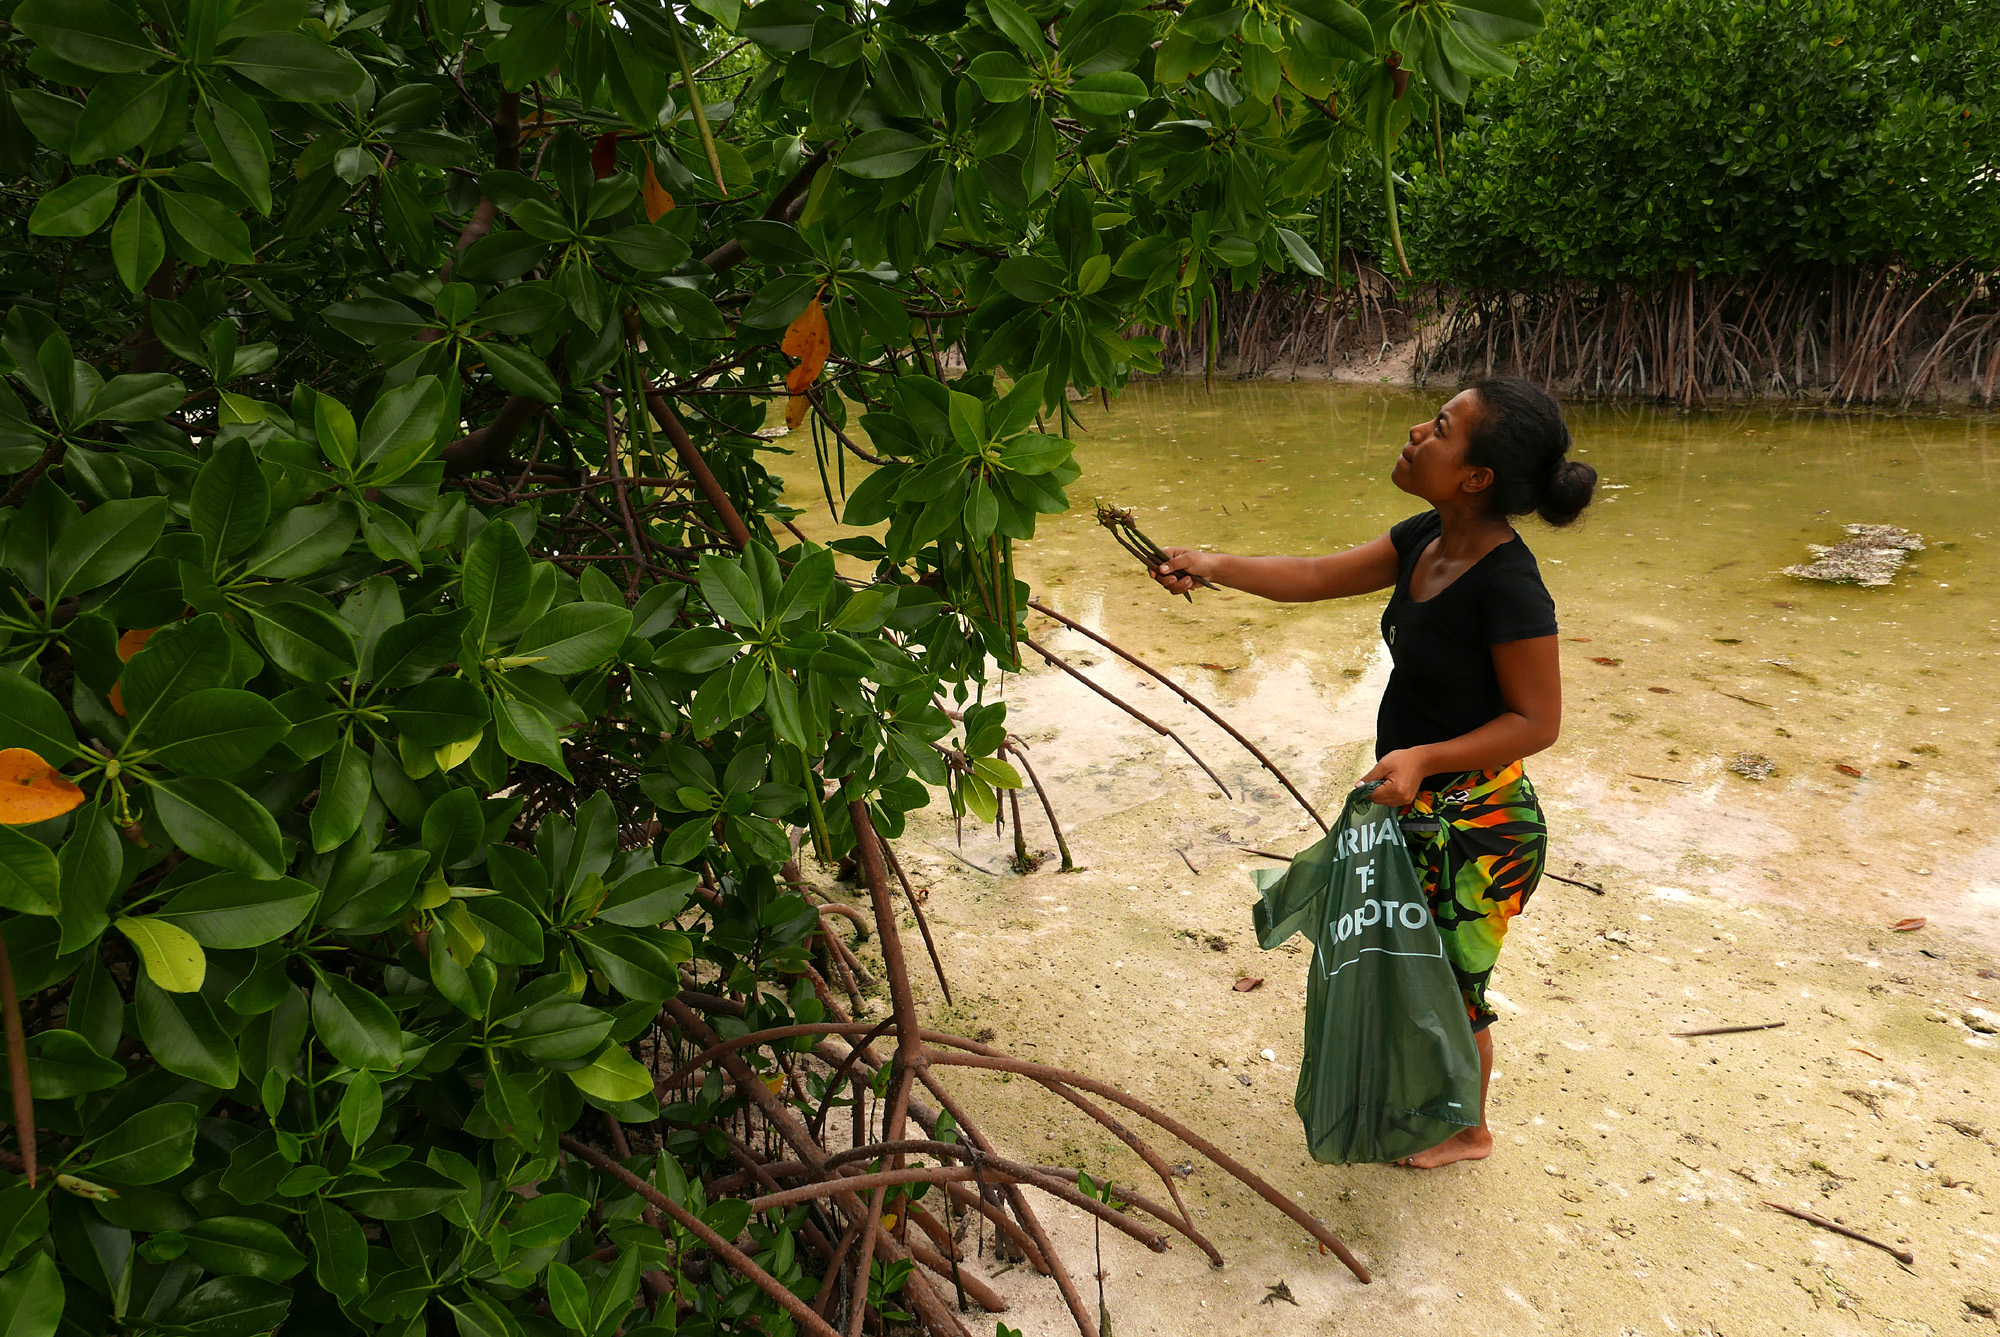 Tinaai Teaua picking mangrove seedlings to be planted in Kiribati. Photo by Kennedy Warne.